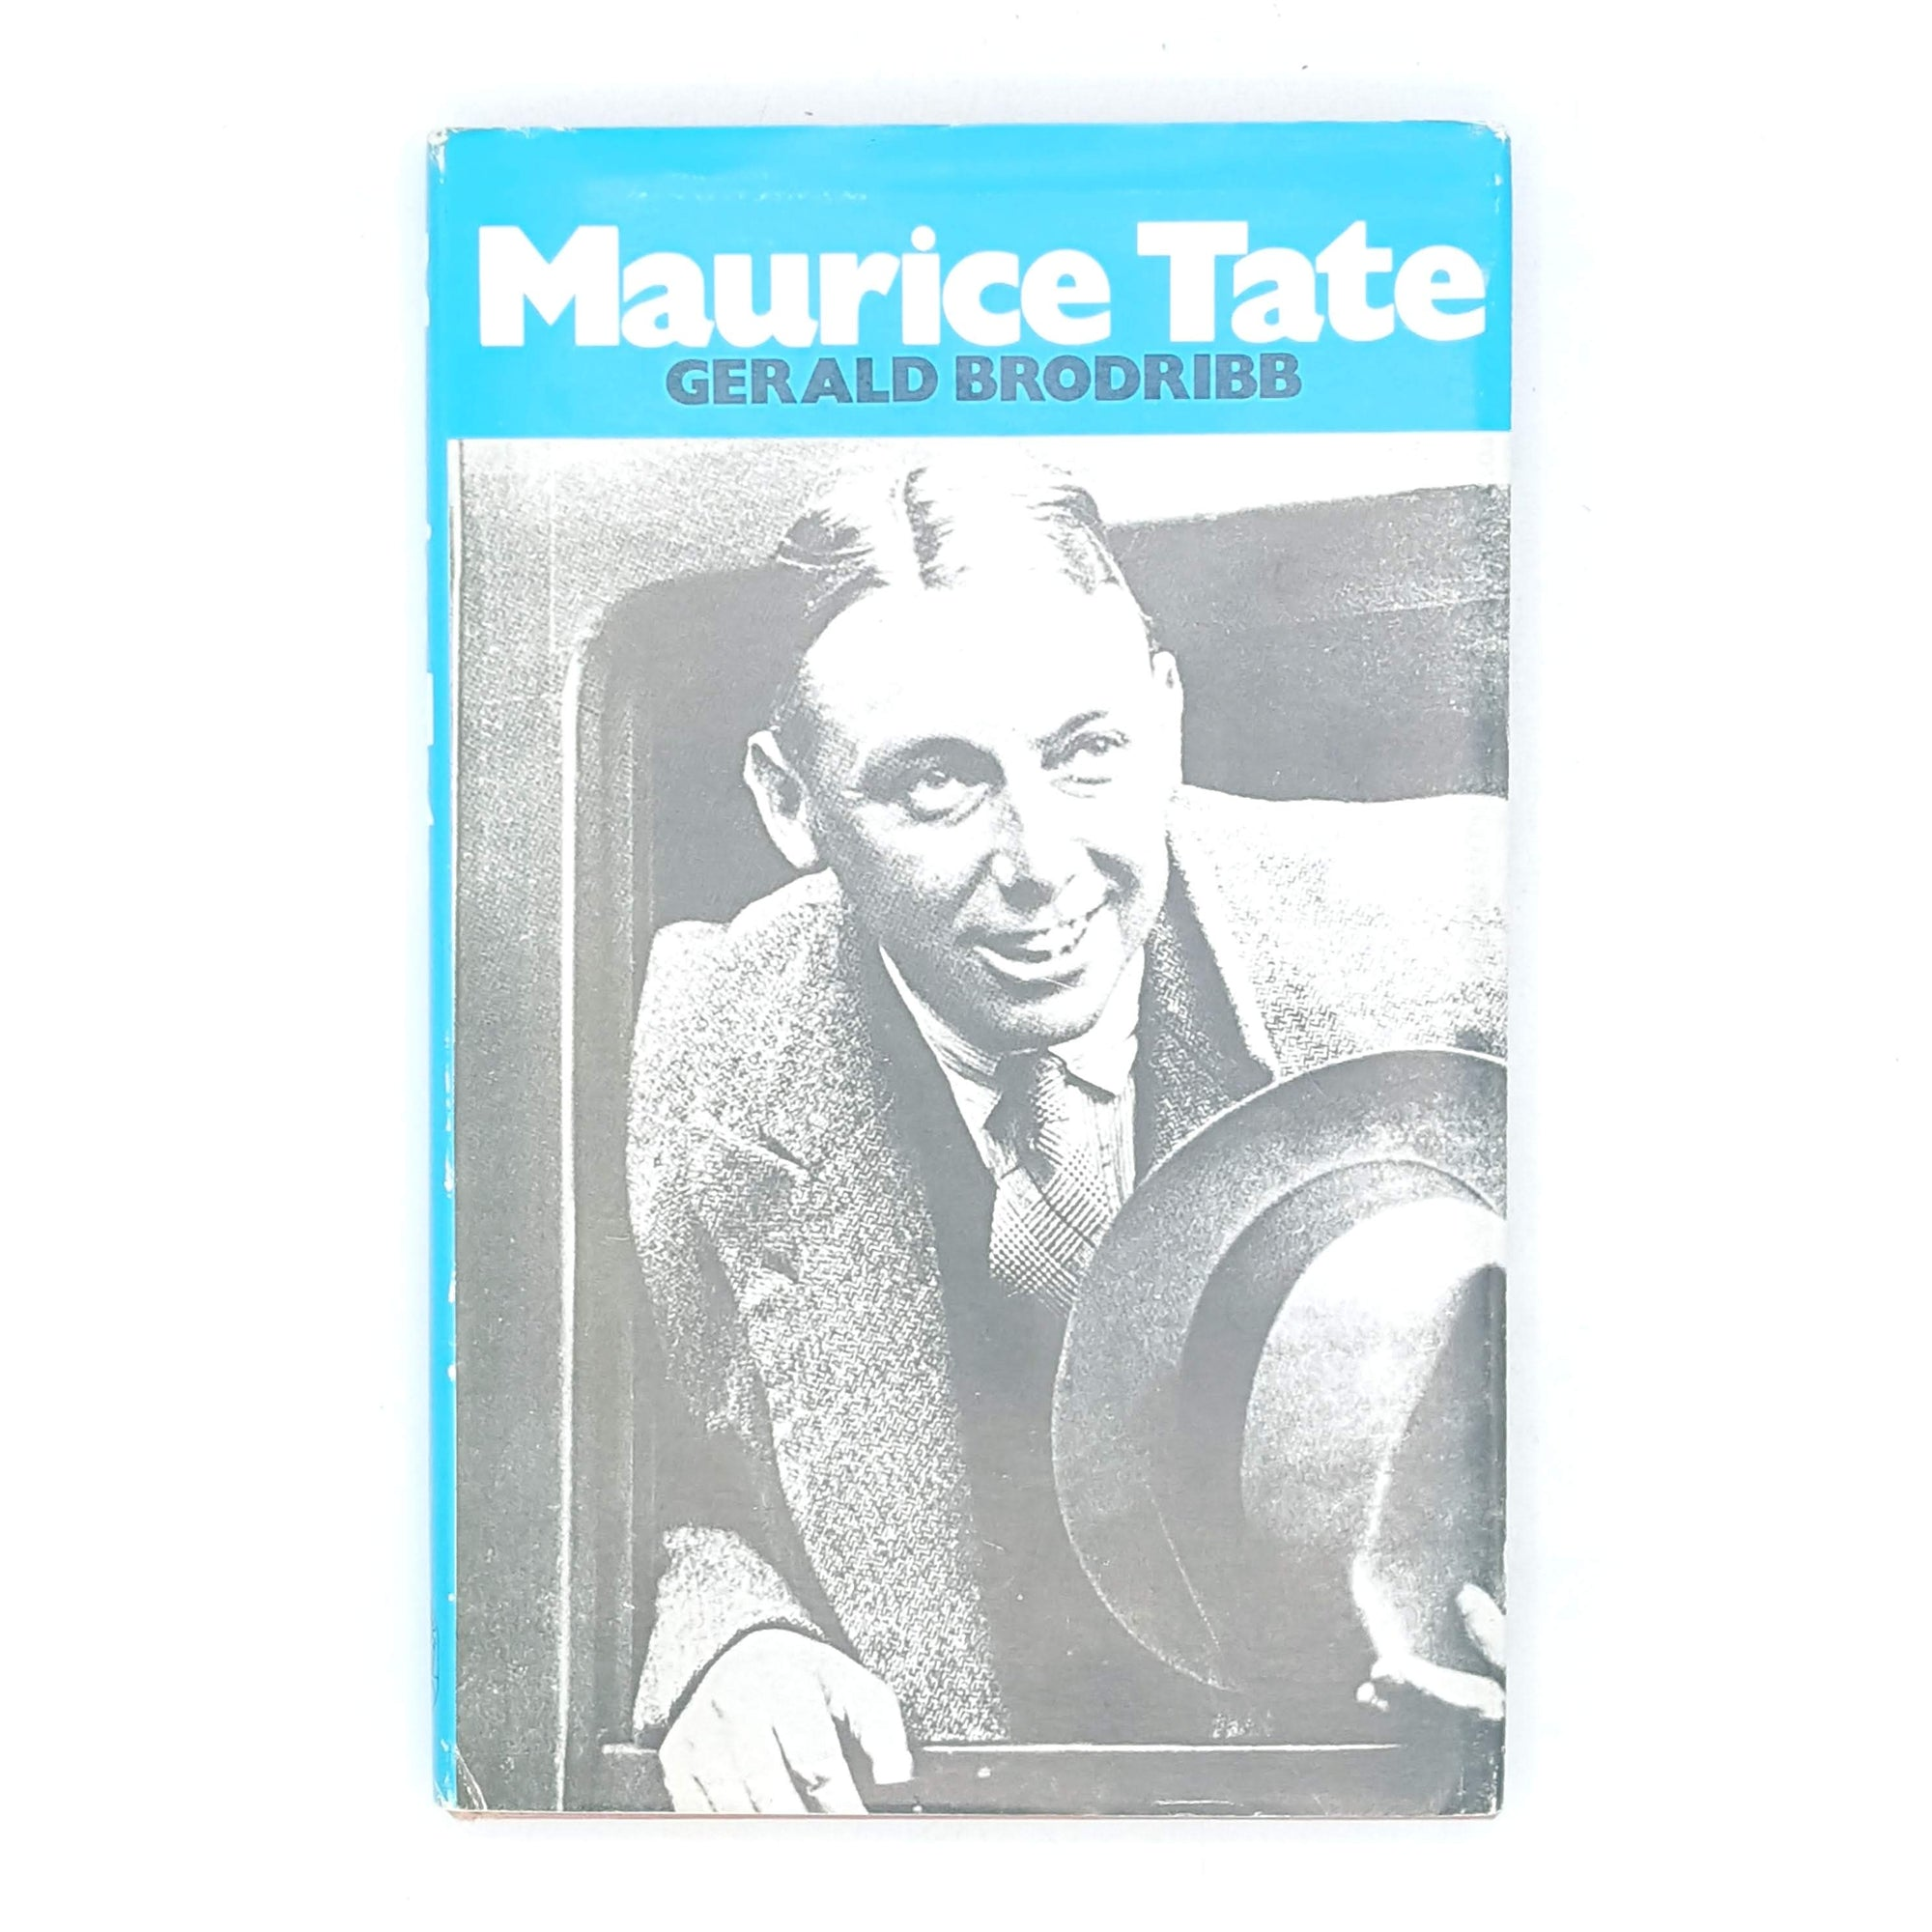 Maurice Tate by Gerald Brodribb 1977